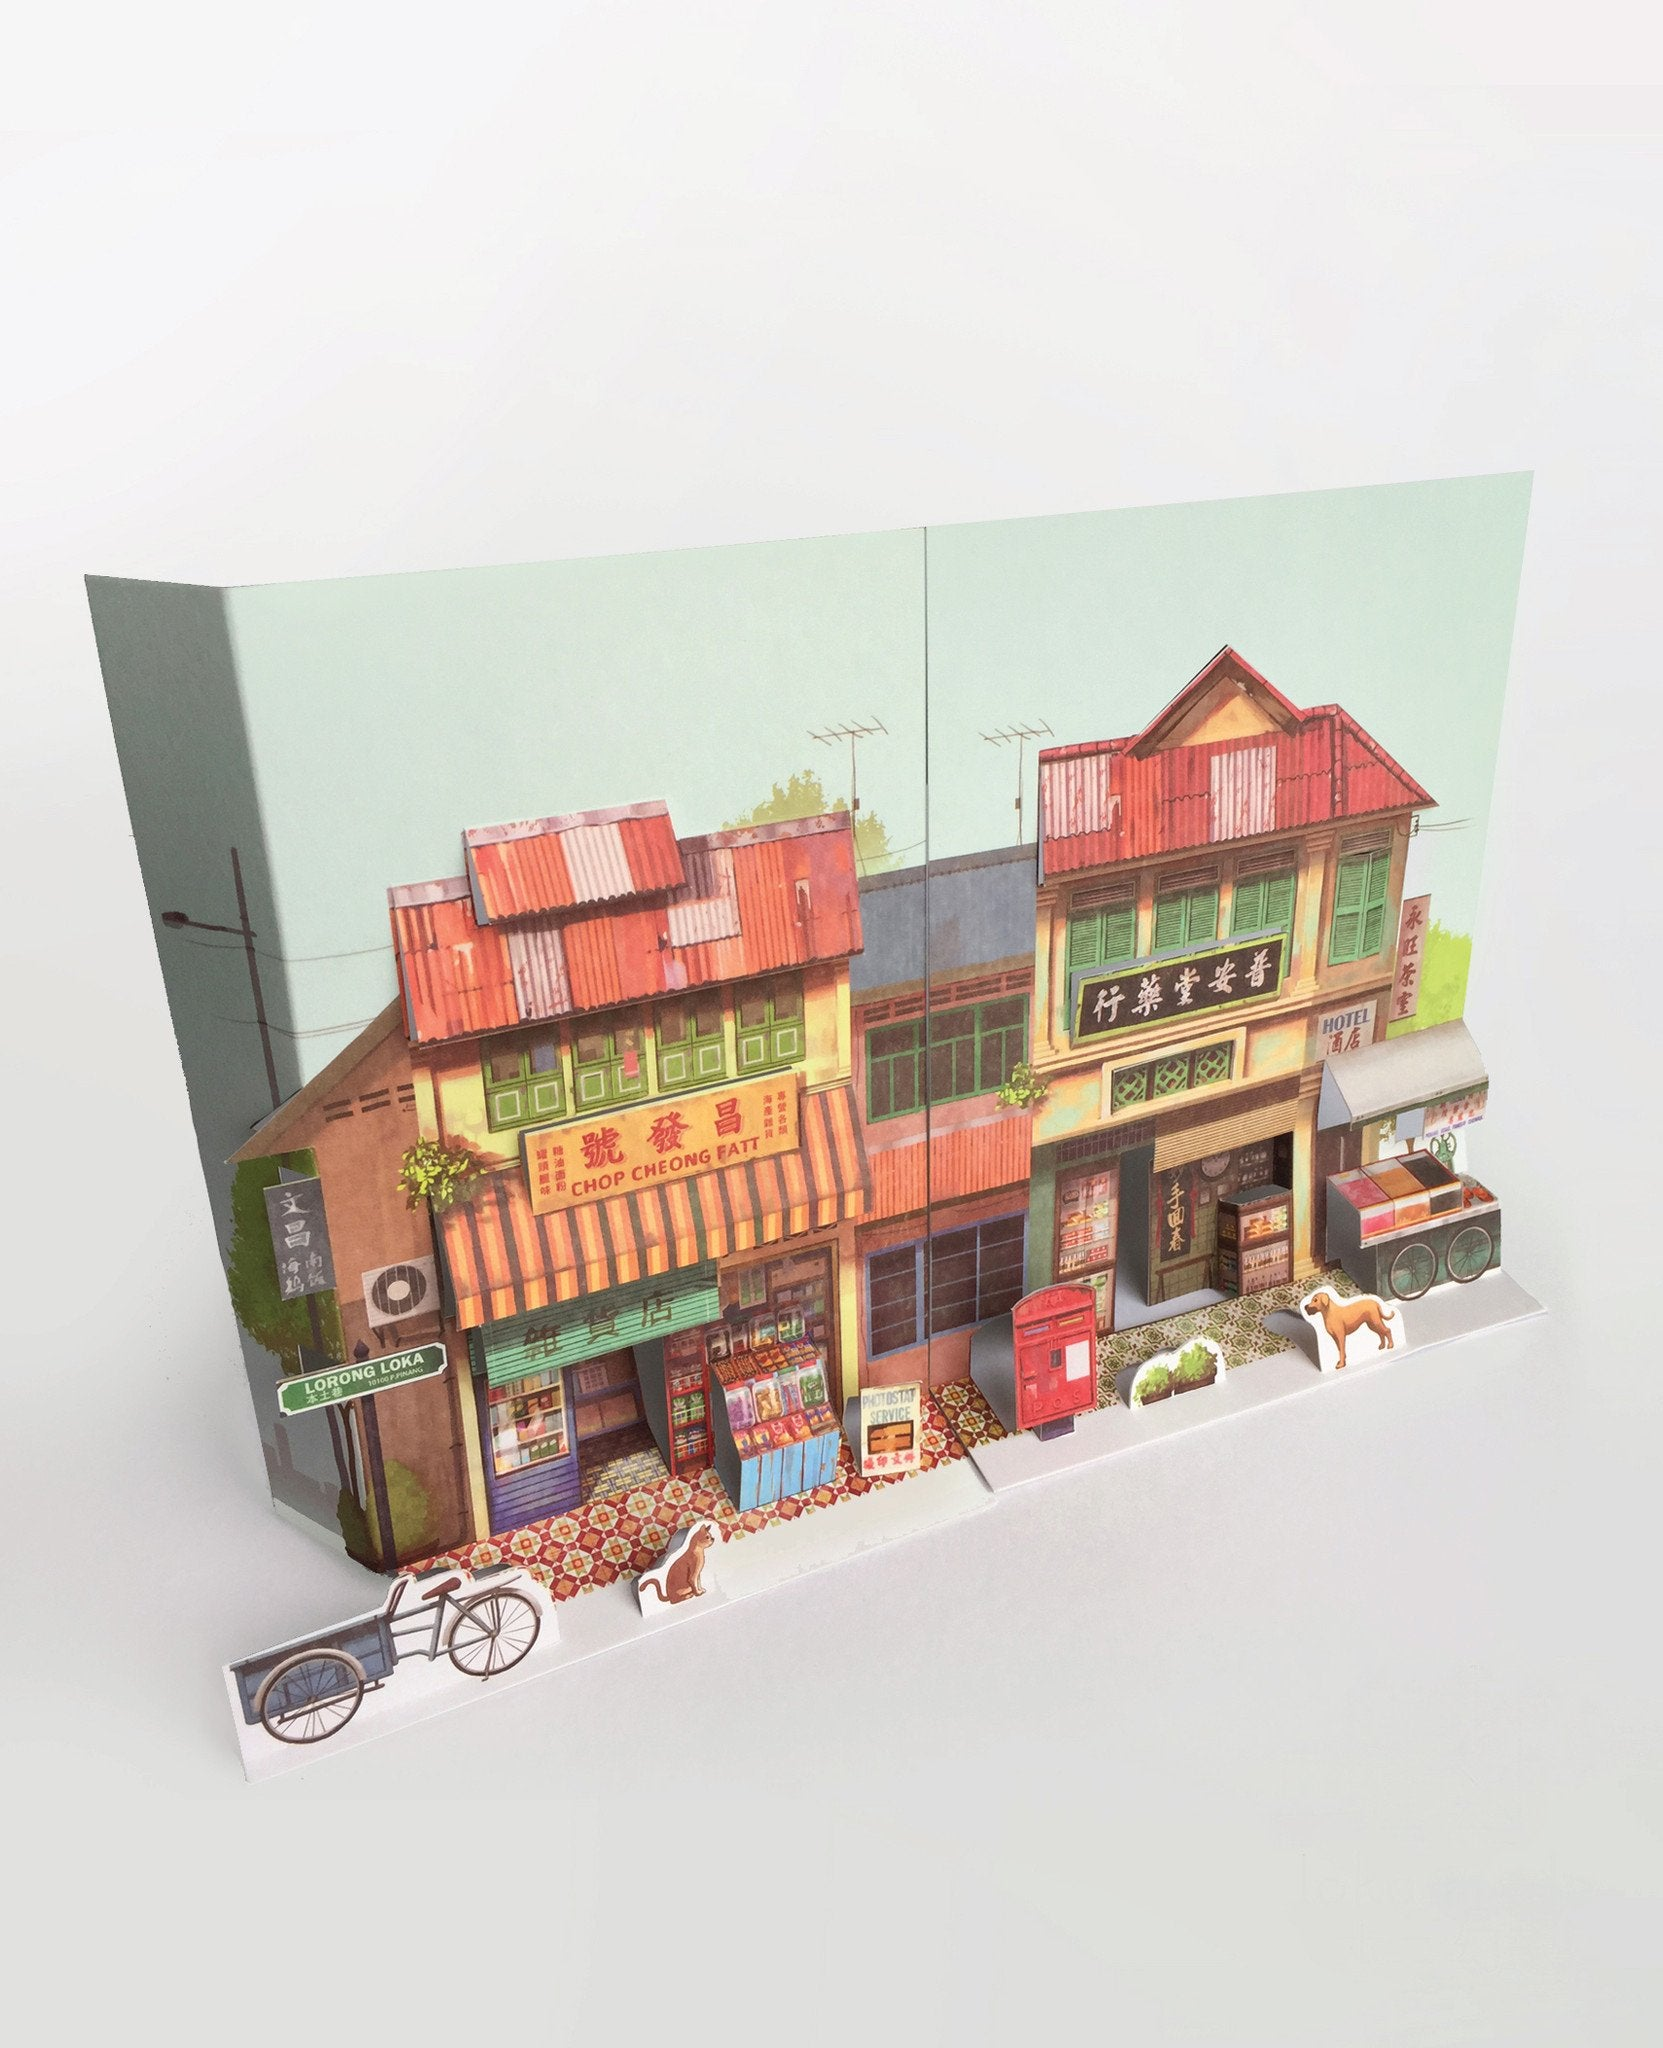 1. Traditional Sundry and Chinese Medical Herbs Shop - Pop up postcard